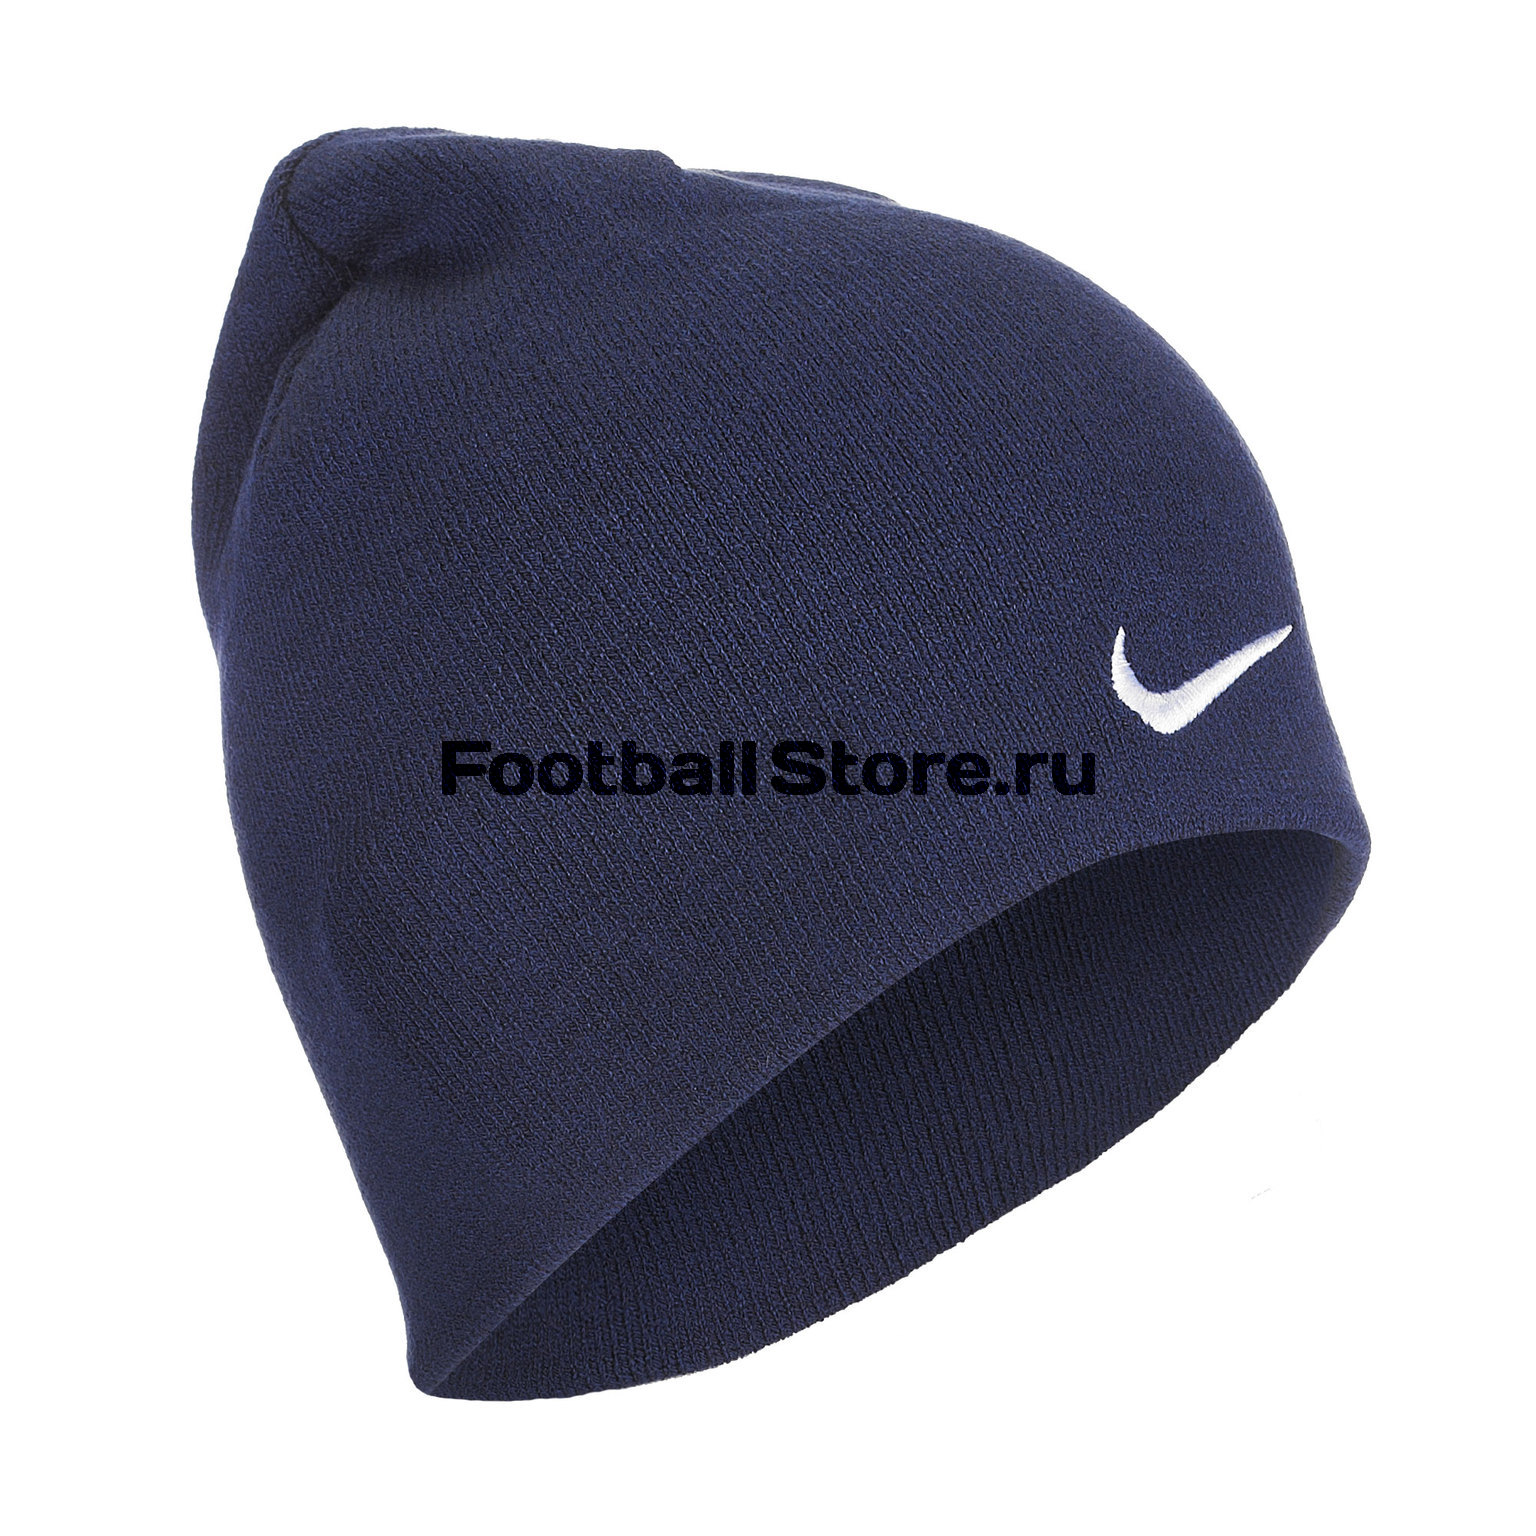 Шапка Nike Team Performance Beanie 646406-451 nike sb шапка nike sb wrap beanie gymred black one size